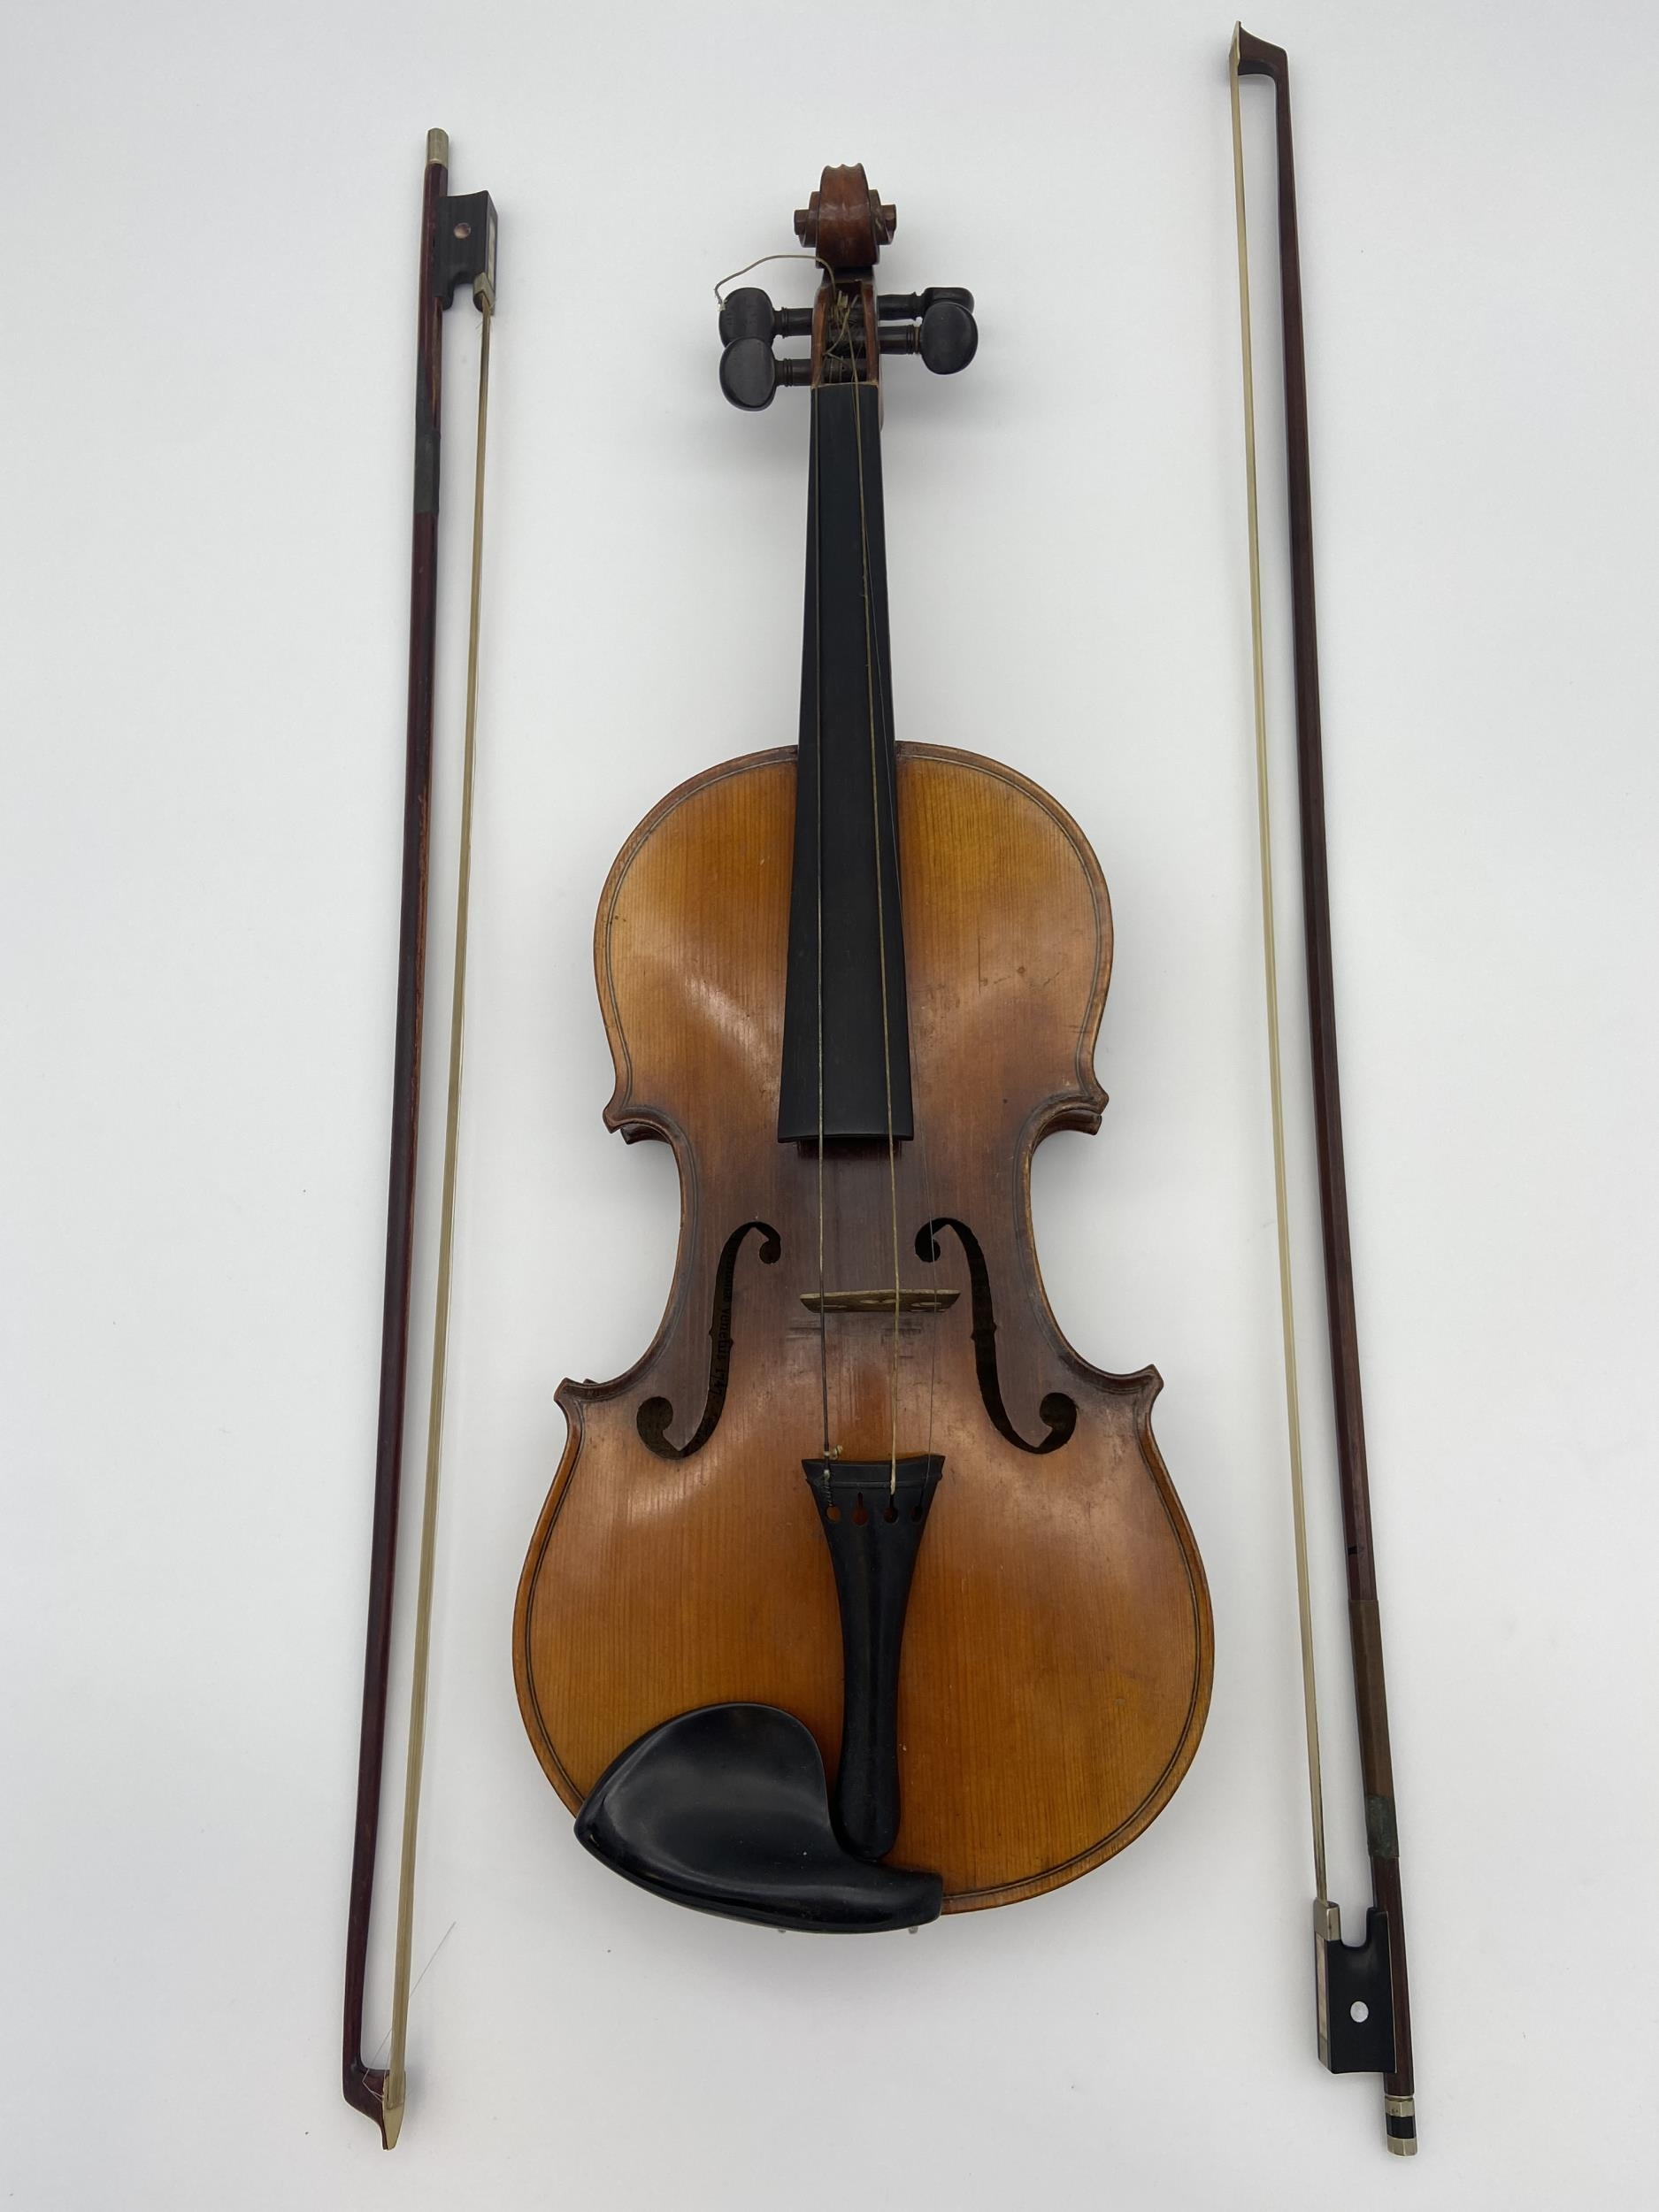 Antique Le Marquis Delair D'Oiseaux Anno Paris Violin with case and two bows. One bow is impressed